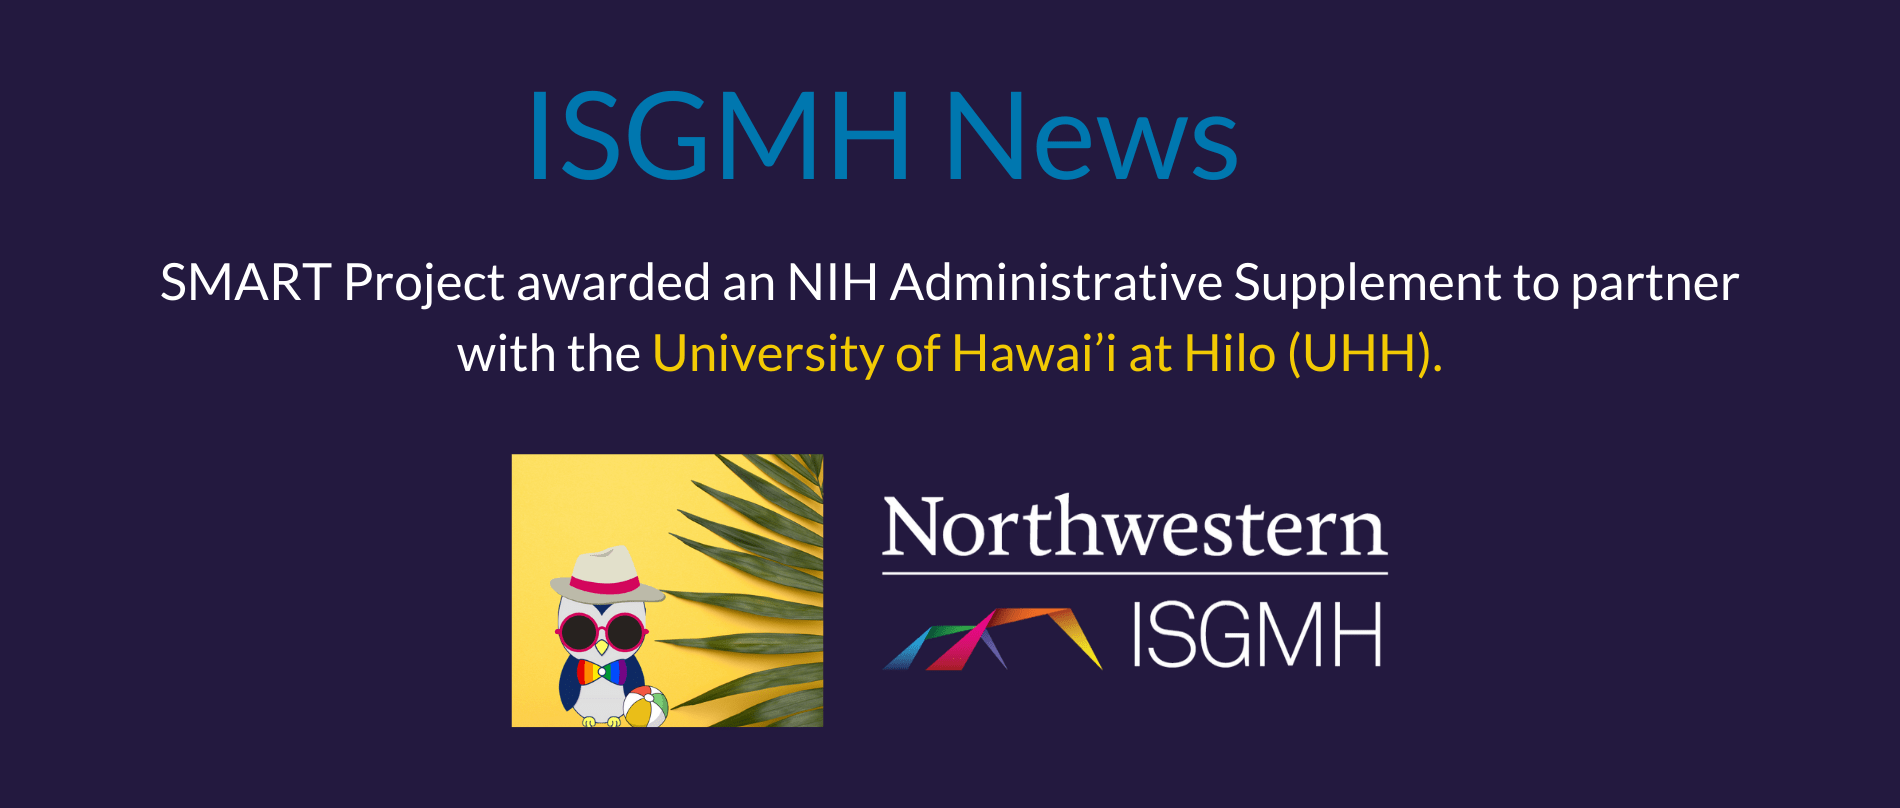 """ISGMH News. SMART Project awarded an NIH Administrative Supplement to partner with the University of Hawai'i at Hilo (UHH)."" Illustrated owl wearing a hat and bowtie and holding a beach ball."